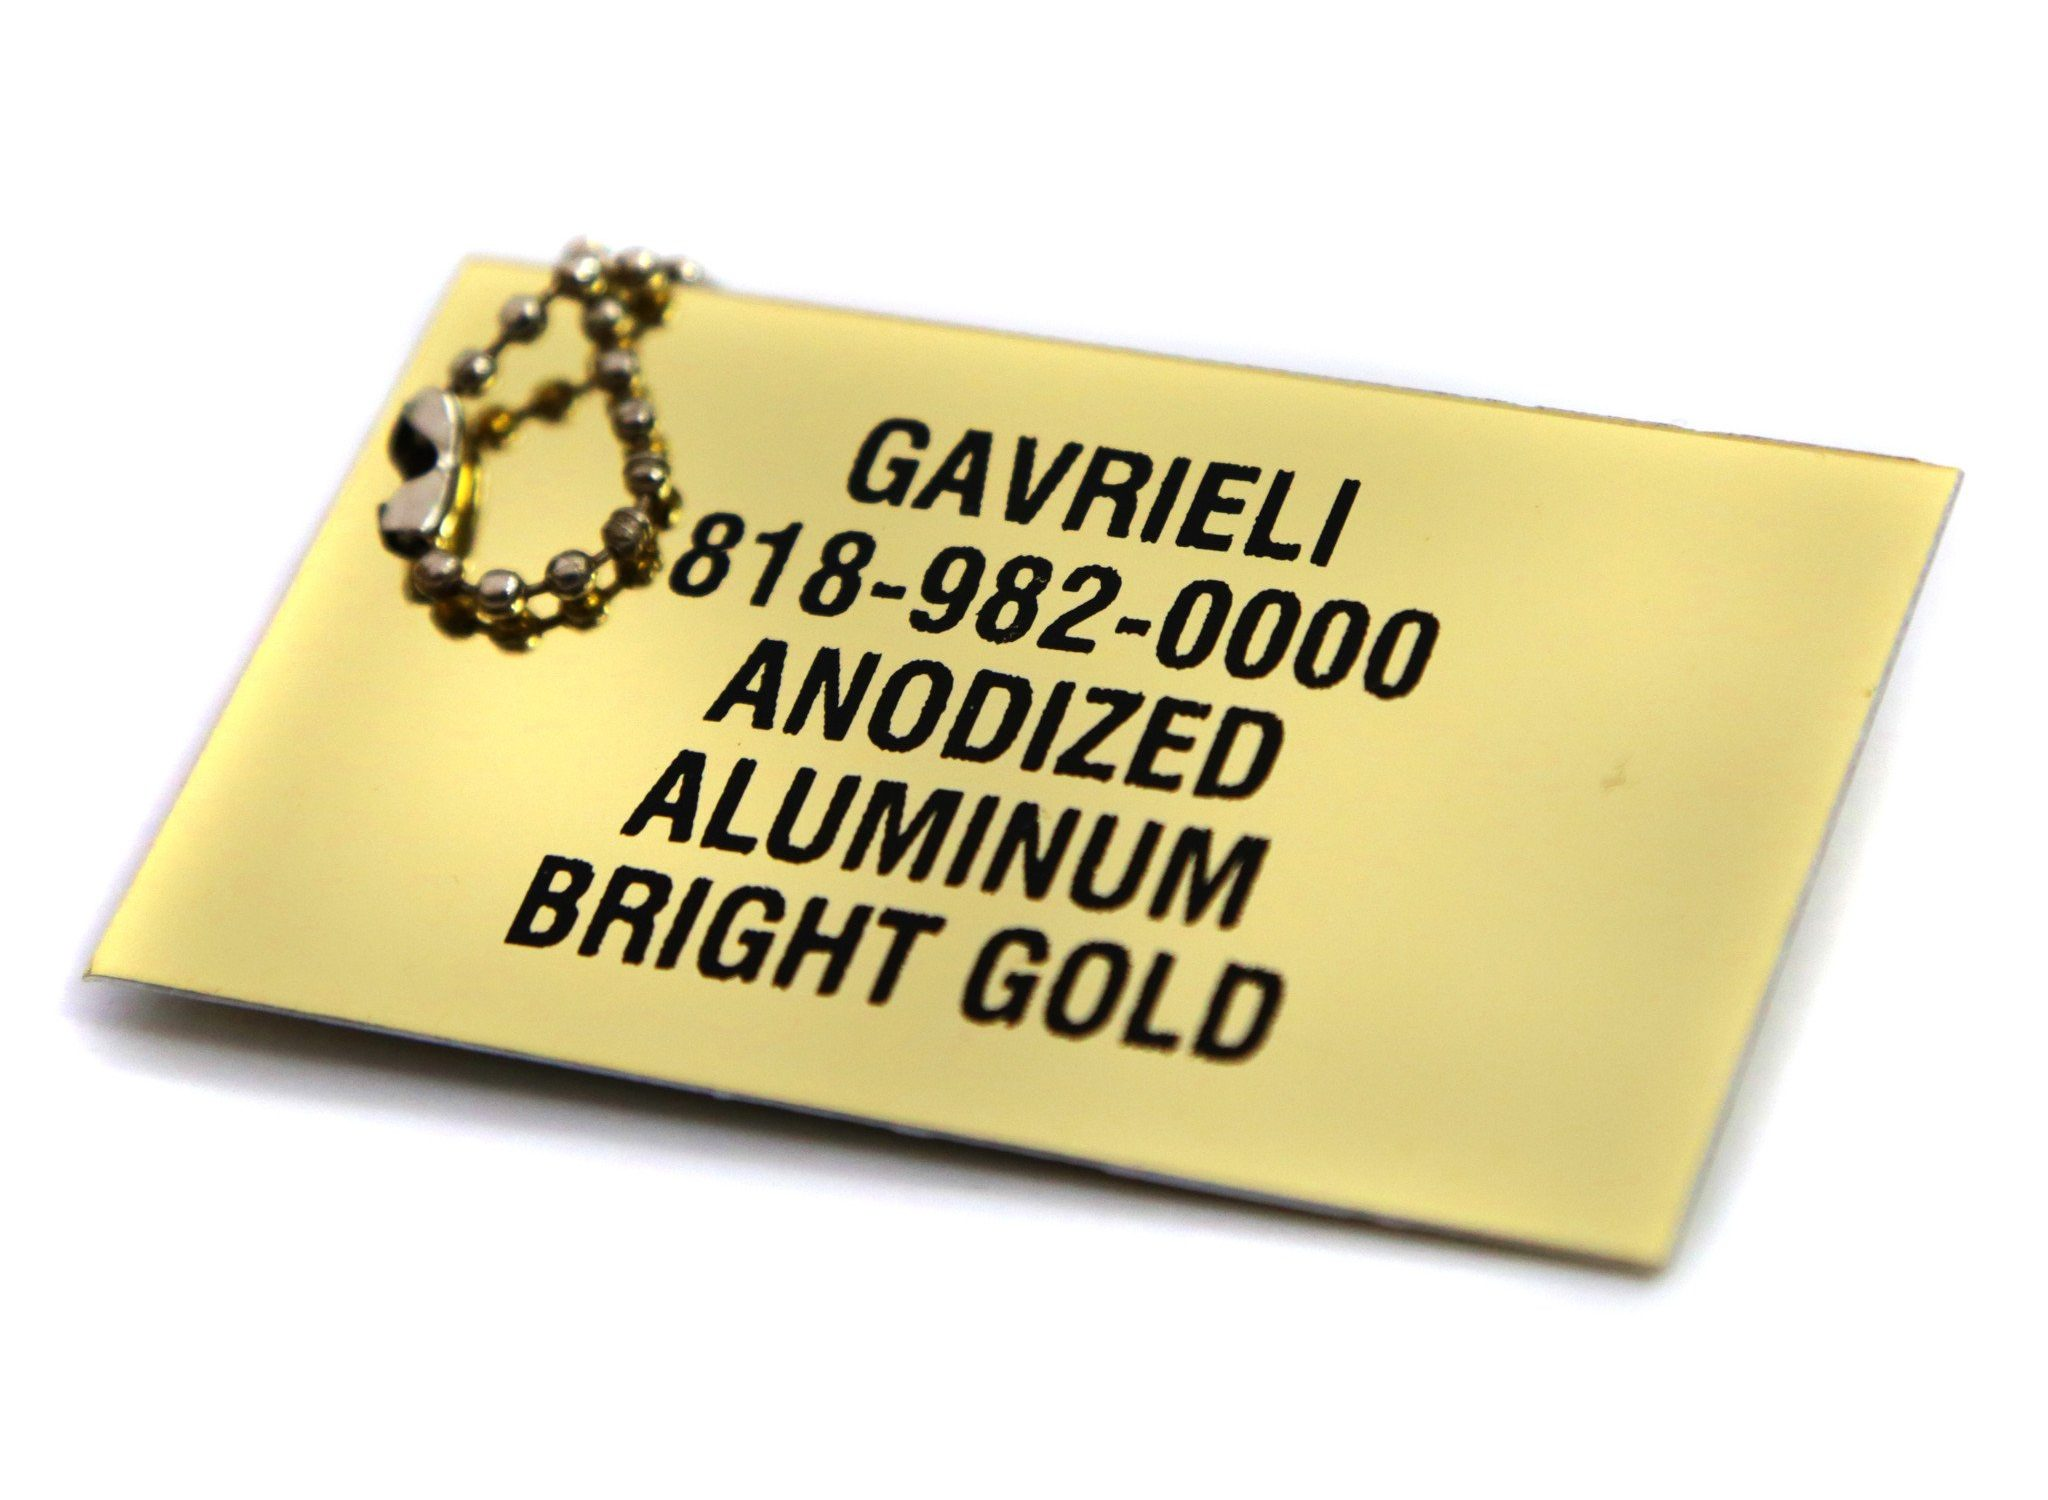 Anondized Aluminum Bright Gold